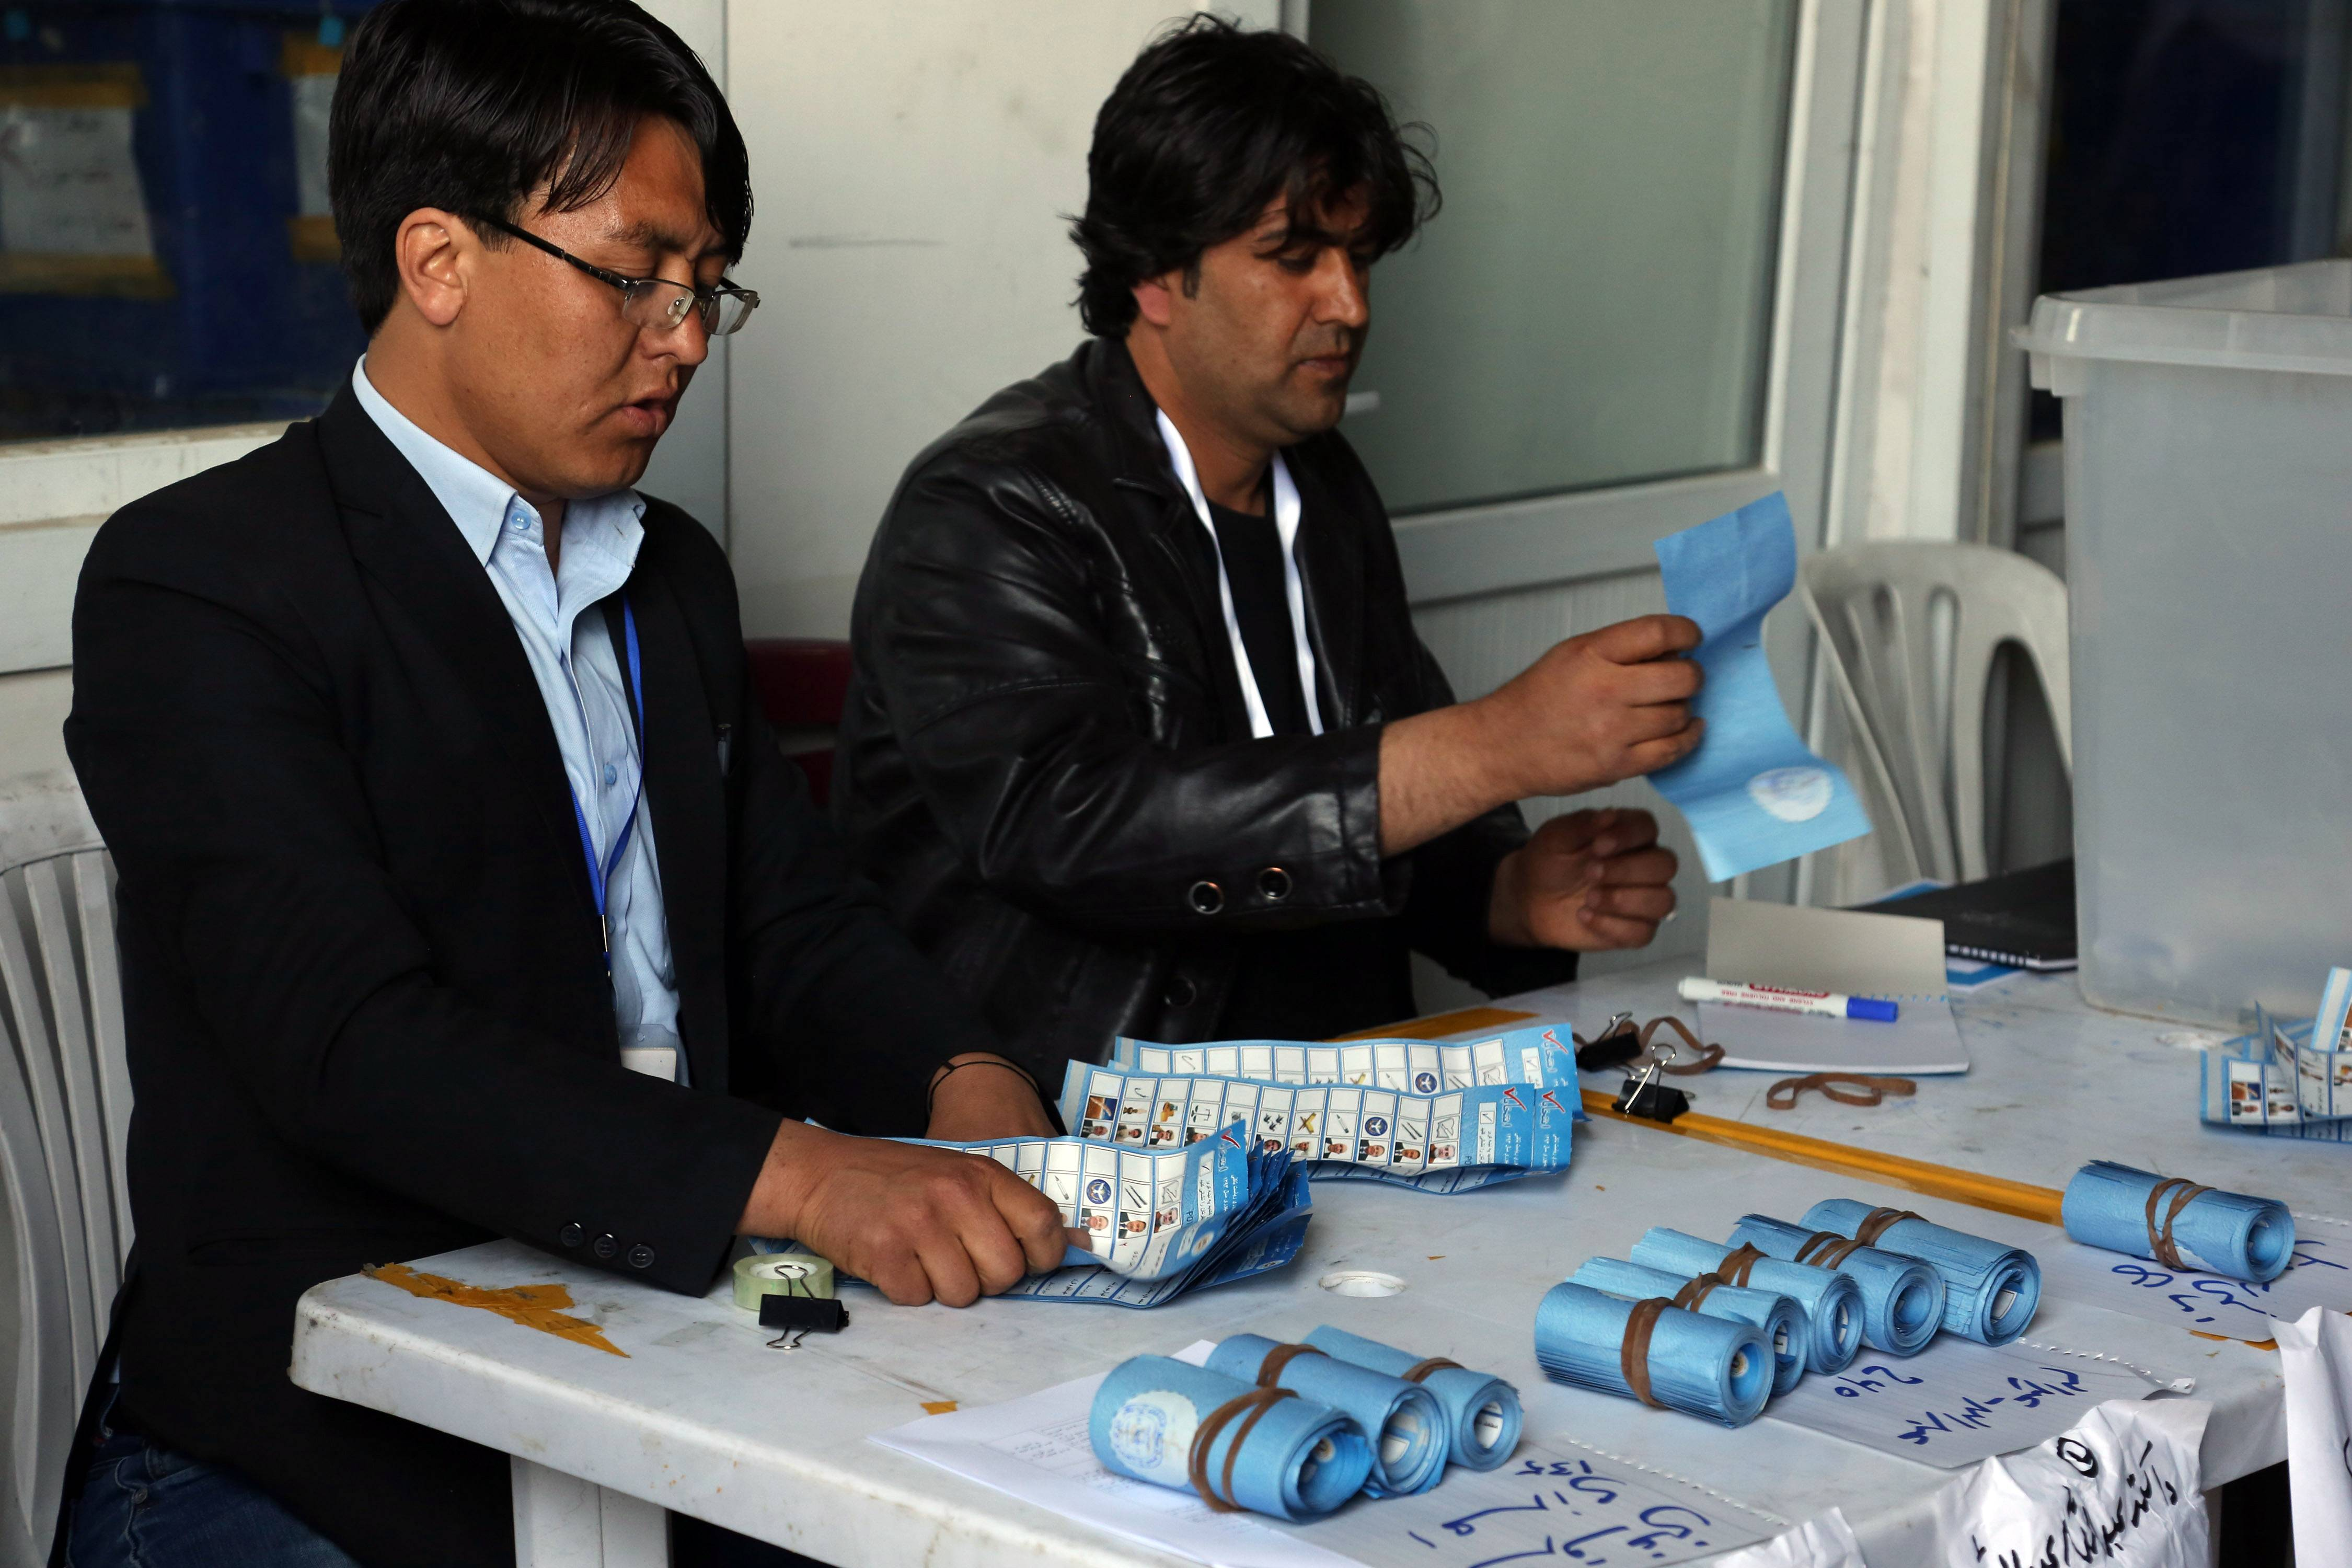 Afghan election workers counts ballots at an Independent Election Commission office in Kabul on Sunday. Partial results released Sunday in Afghanistan's crucial presidential election show a tight race between ex-foreign minister Abdullah Abdullah and former finance minister Ashraf Ghani.